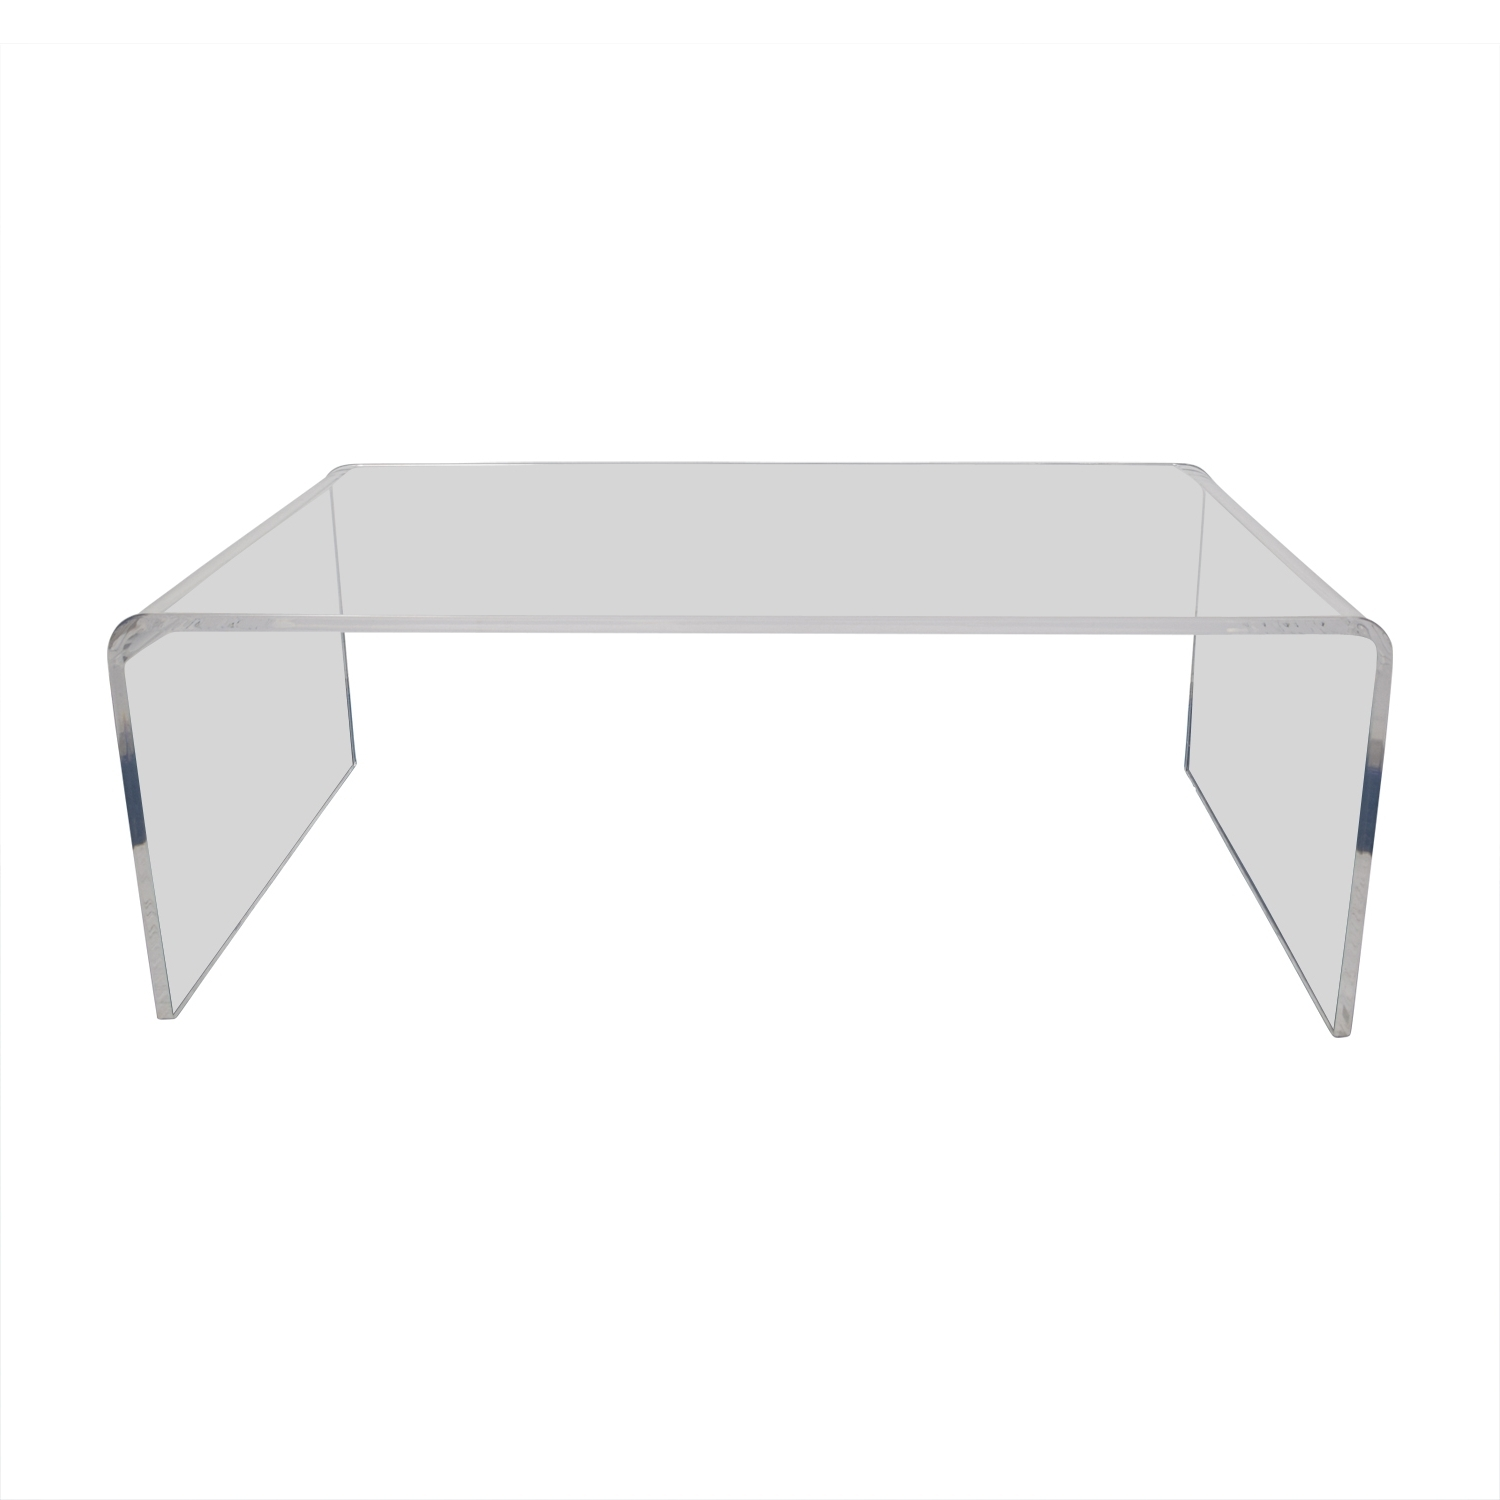 [%Recent Peekaboo Acrylic Coffee Tables Inside 60% Off – Cb2 Cb2 Peekaboo Acrylic Coffee Table / Tables|60% Off – Cb2 Cb2 Peekaboo Acrylic Coffee Table / Tables Throughout Trendy Peekaboo Acrylic Coffee Tables%] (View 2 of 20)